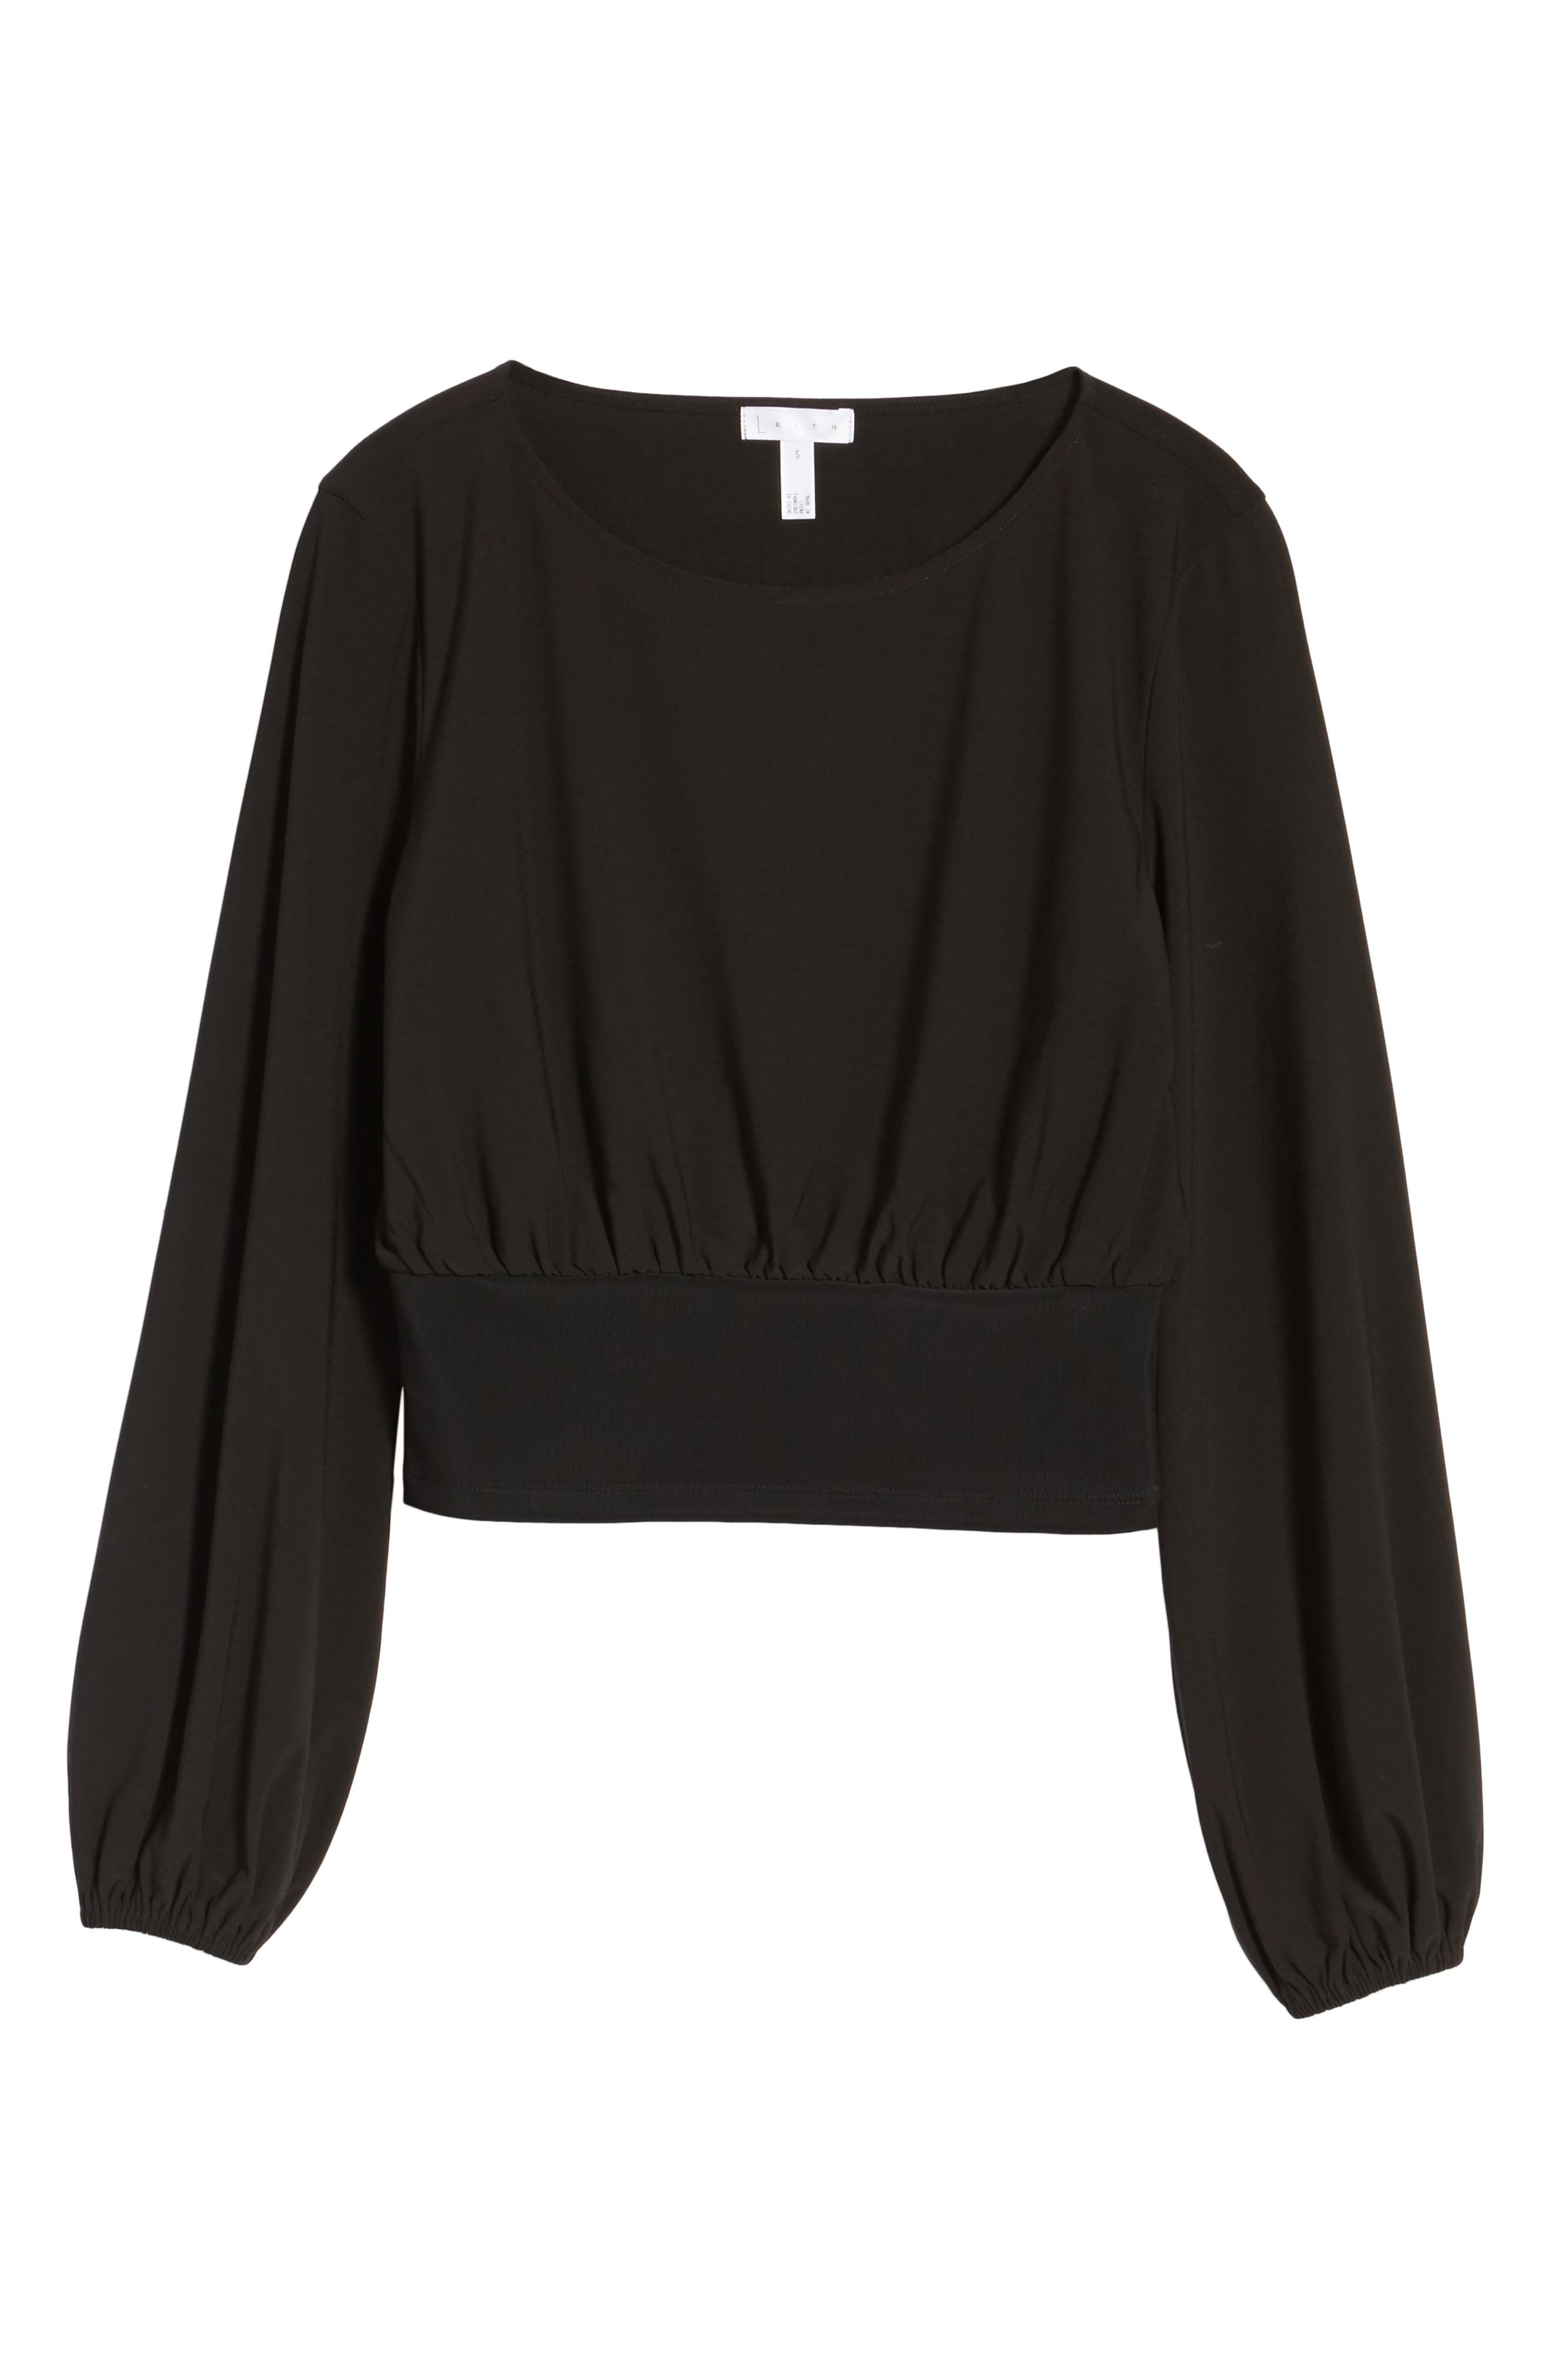 Blouson Banded Top,                             Alternate thumbnail 6, color,                             Black